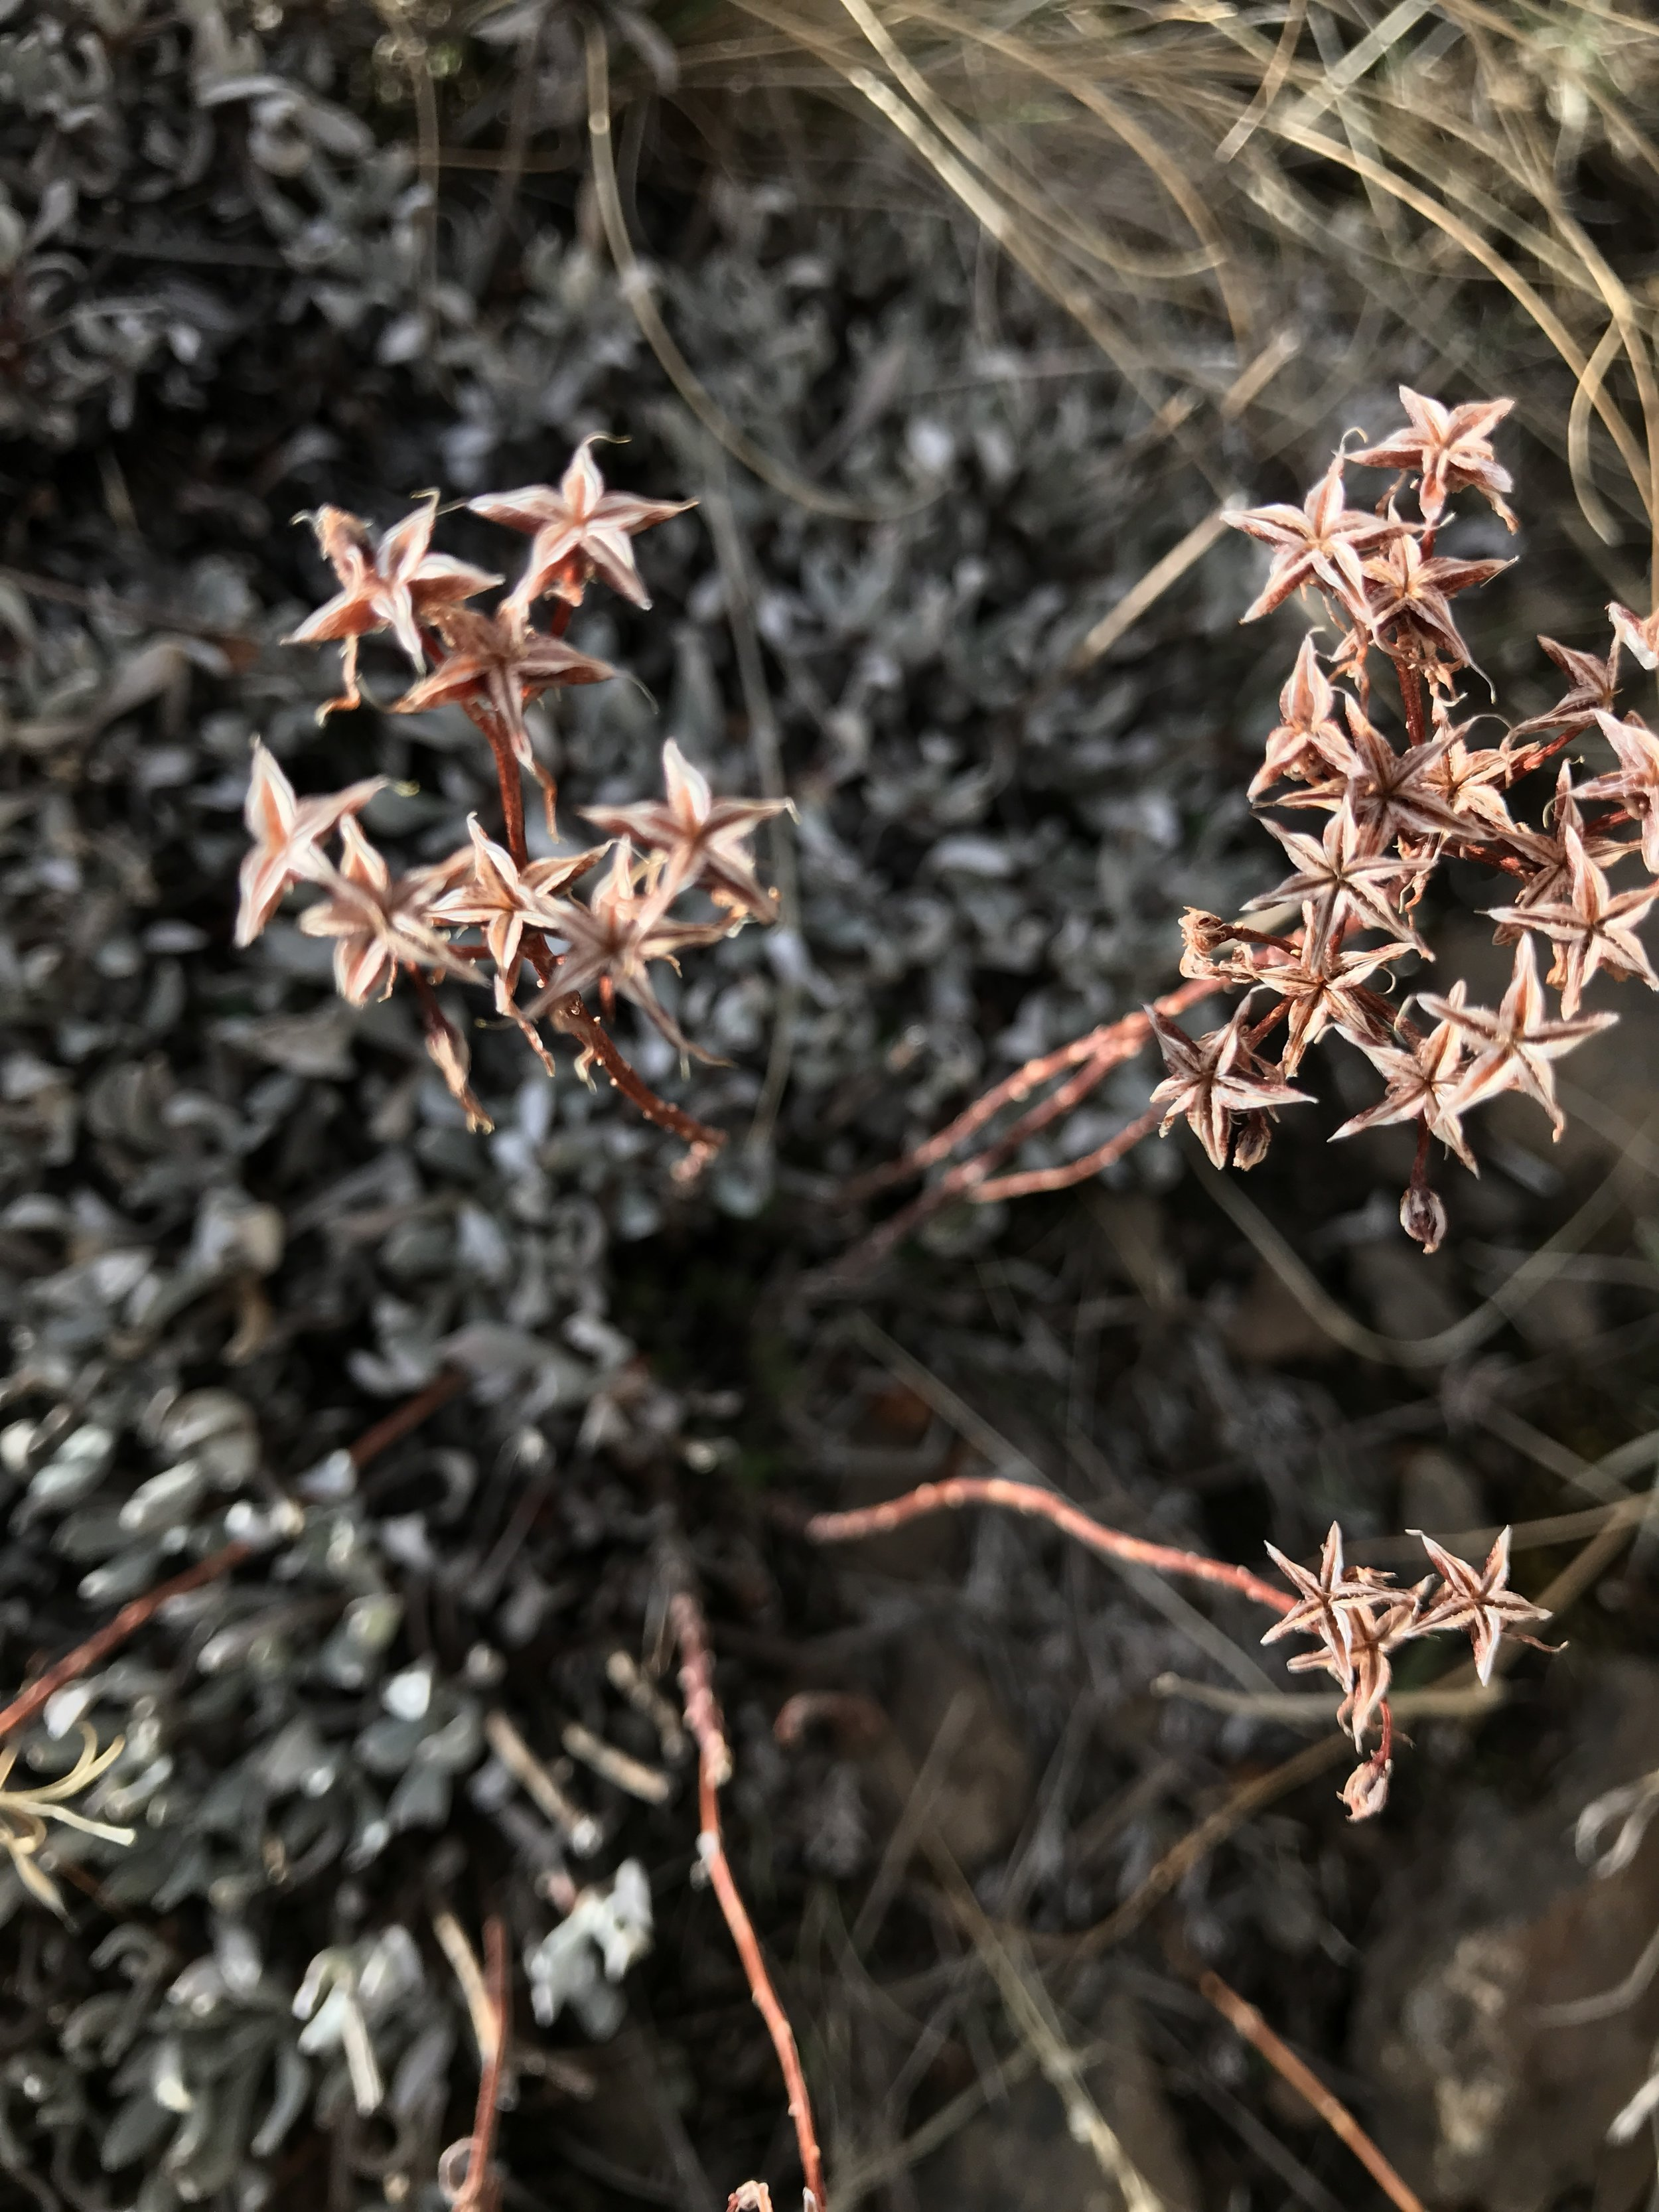 """This starry-flowered plant grows natively on a rocky bluff near my home. I've yet to trace it """"backward in time"""" to its blooming phase, so that I can identify what it is. Will the flower be as pretty as these dried flower sepals?"""